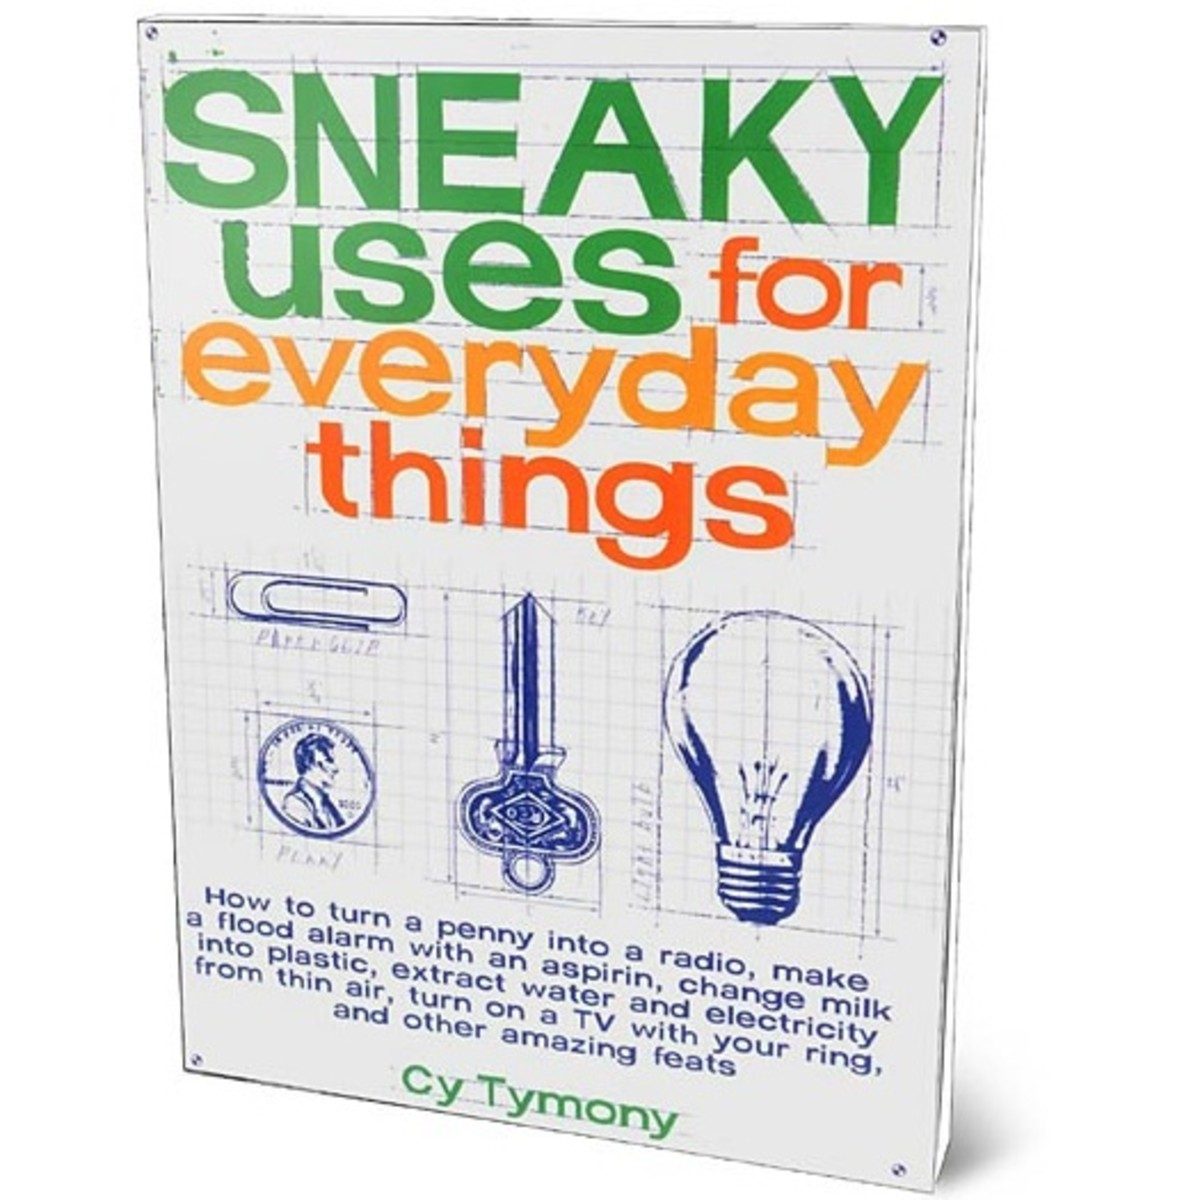 Sneaky Uses of Everyday Things